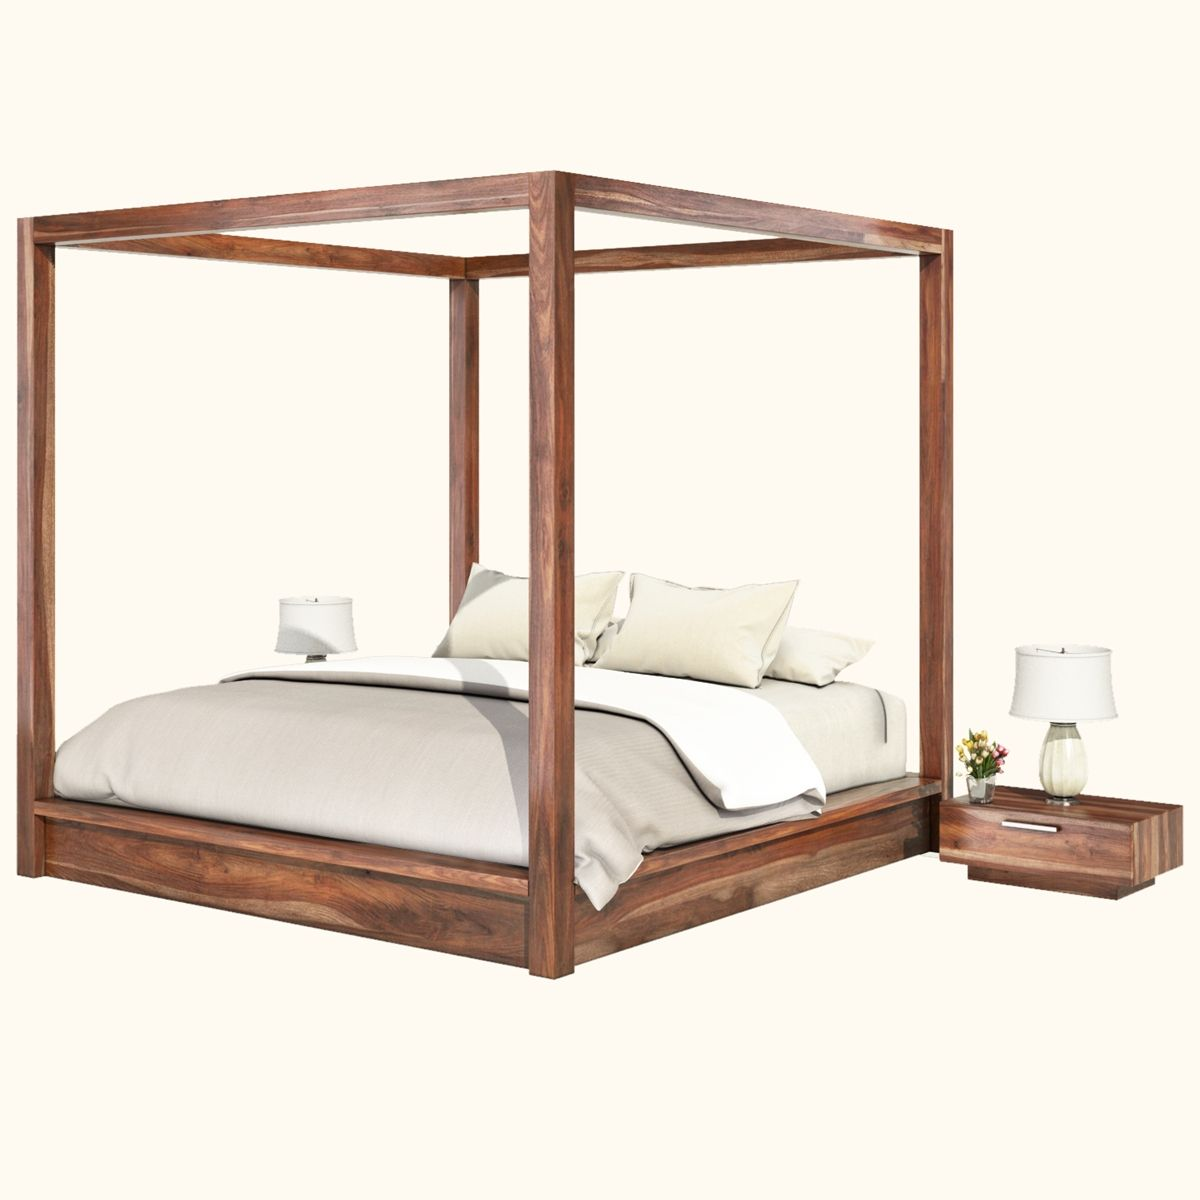 Hampshire Rustic Solid Wood Canopy Bed Canopy Bed Frame Wood